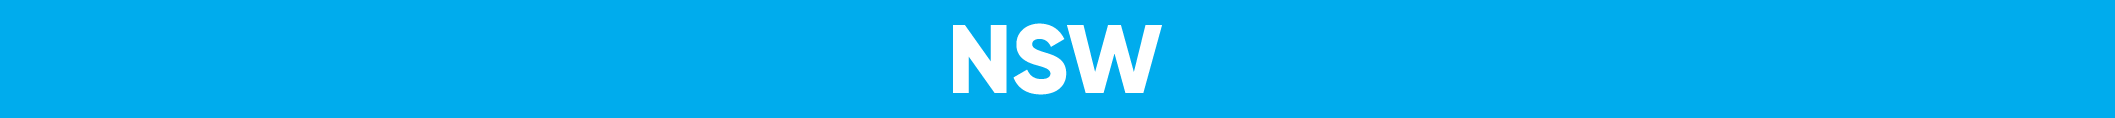 NSW_Banner.png